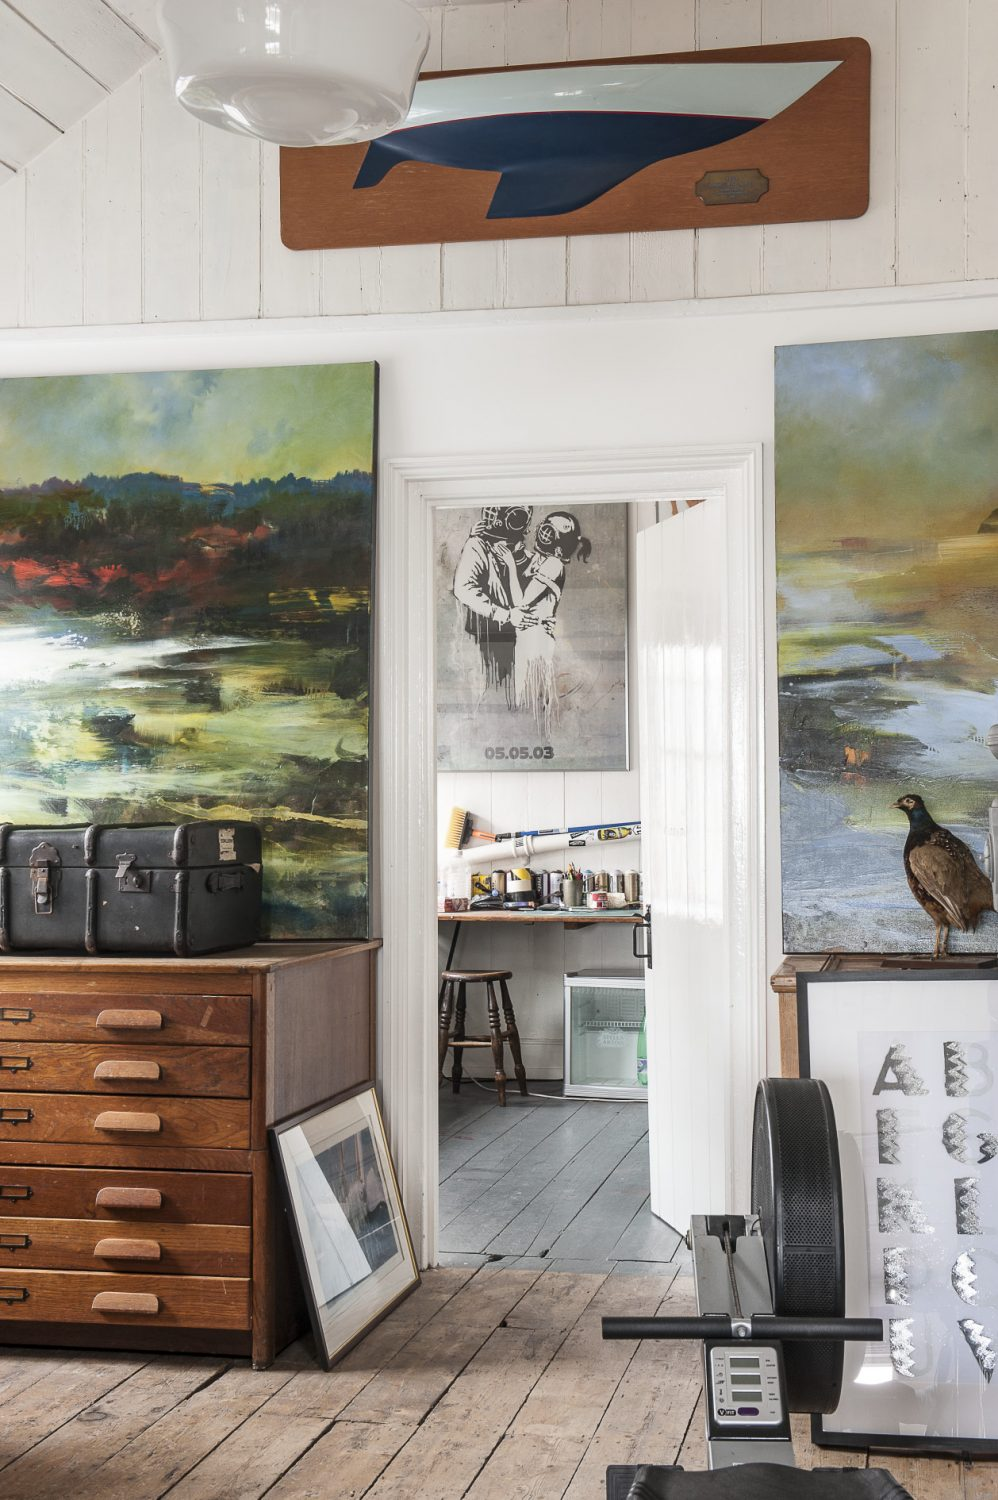 At one end of the room, Rob's son's spacious studio is tucked away behind a door